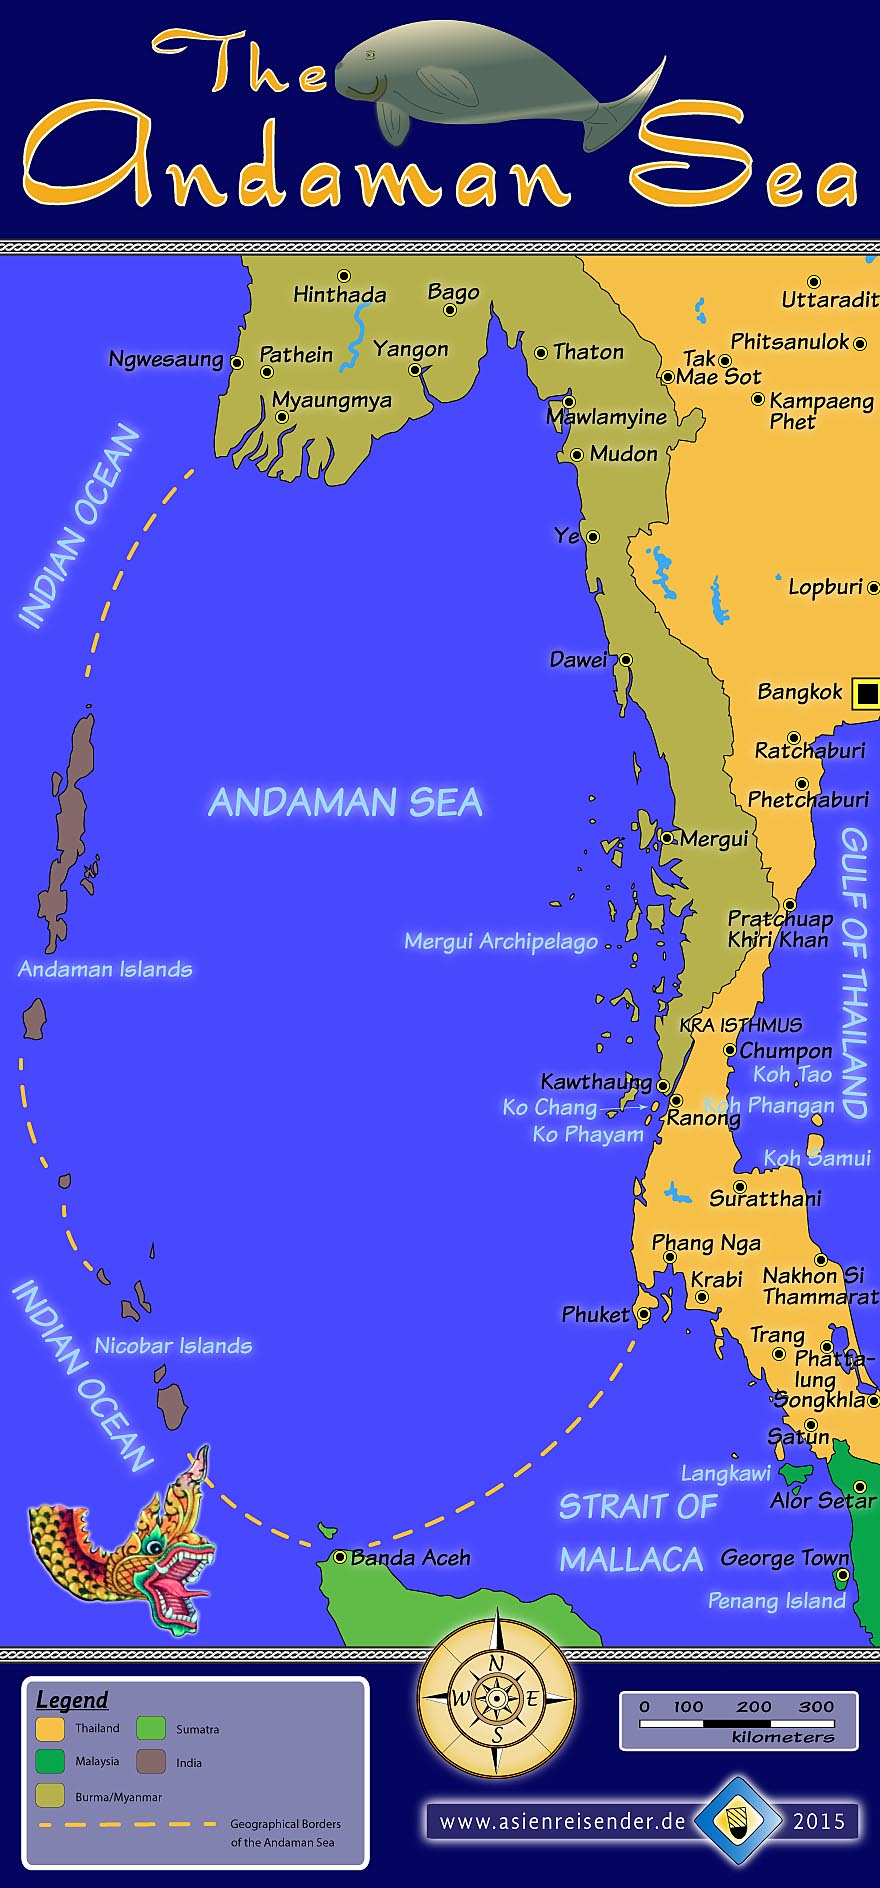 'Interactive Map of the Andaman Sea' by Asienreisender